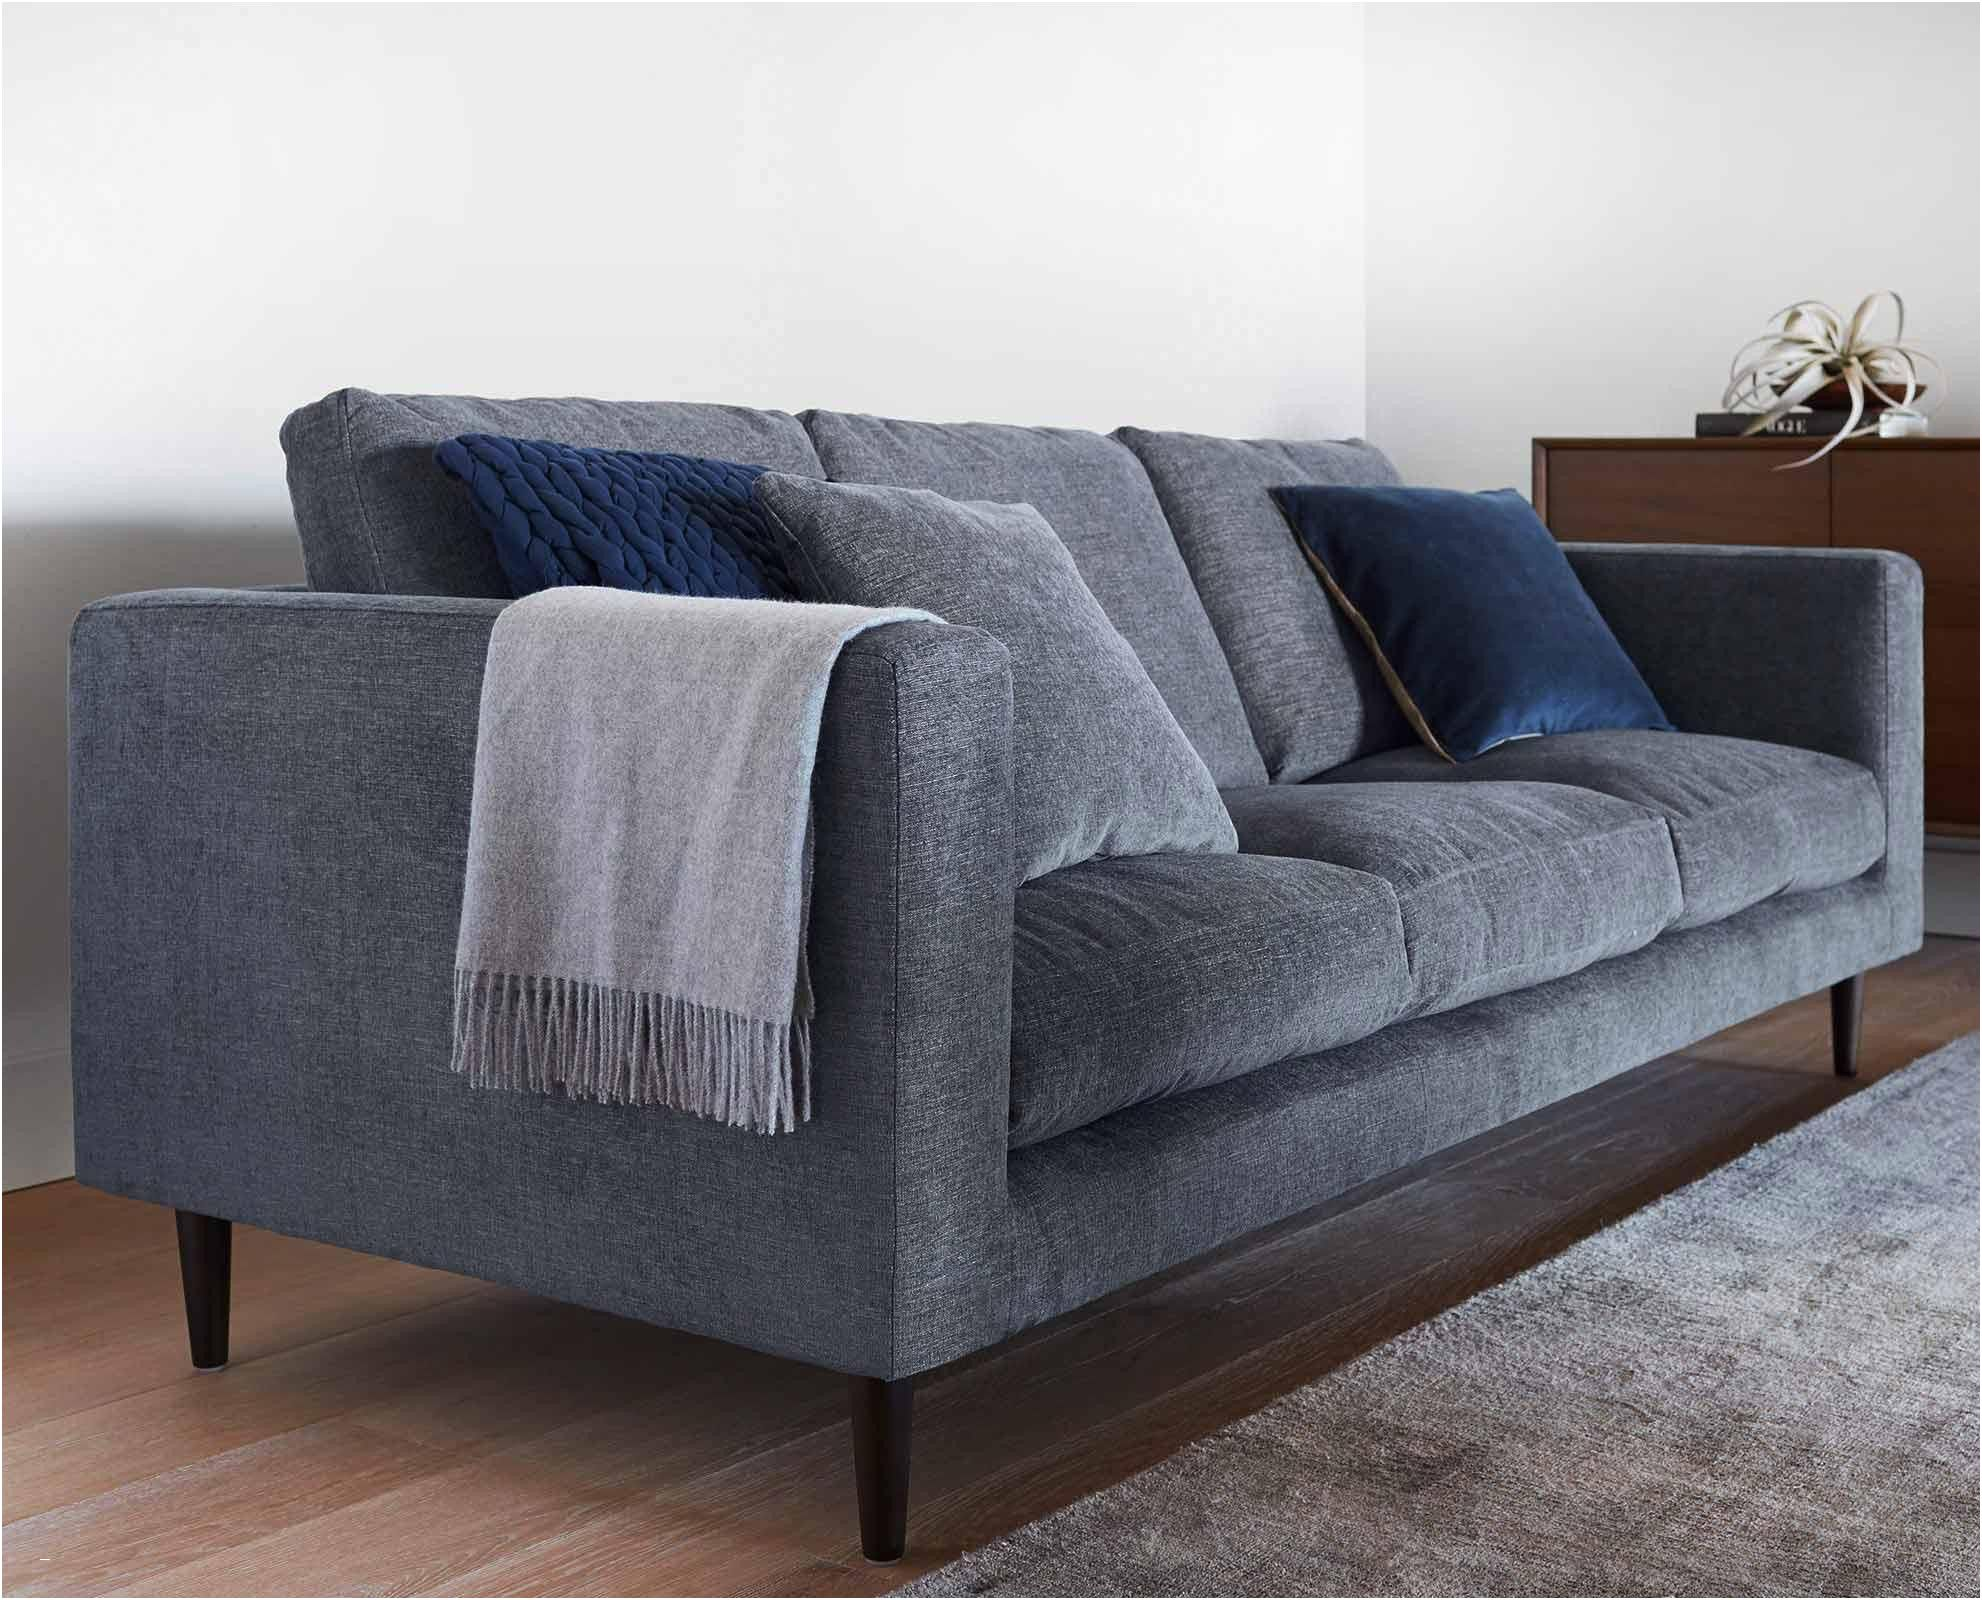 Frisch Sofa Mit Relaxfunktion Sofa Bed Sofa And Loveseat Set Living Room Sofa